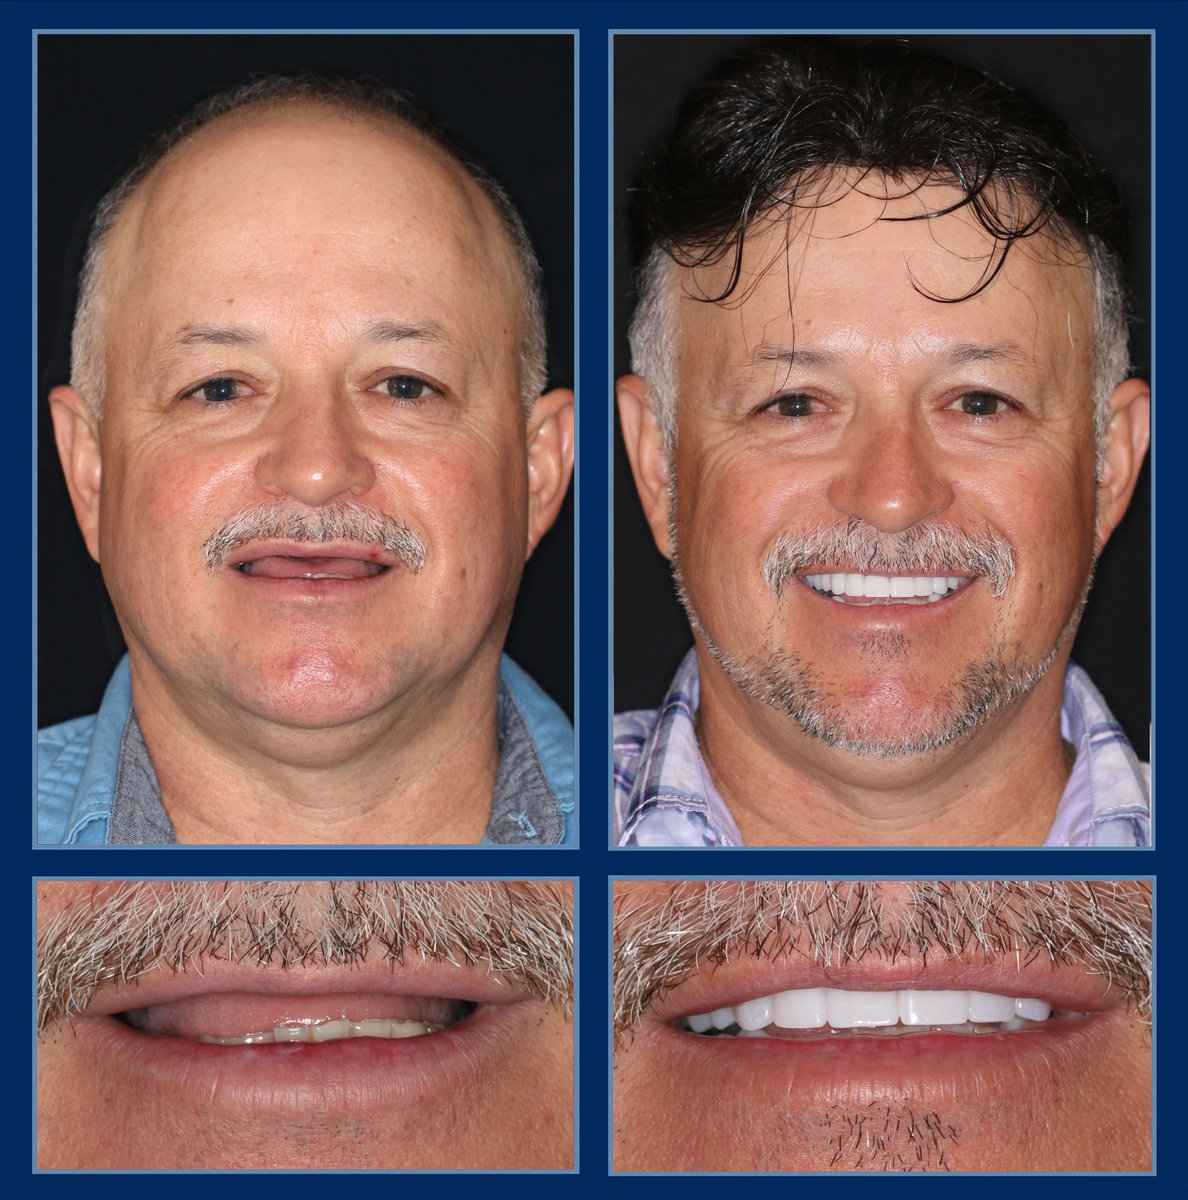 """Sometimes it's more than just making them all say, """"Wow!"""" It can be about starting fresh and becoming a whole new person filled with confidence and freedom. Get your life changing #smilemakeover here: http://TheCosmeticDentistsOfAustin.com #veneers #cosmeticdentist #reconstructivedentistry #atxpic.twitter.com/d823Vg1Q6u"""